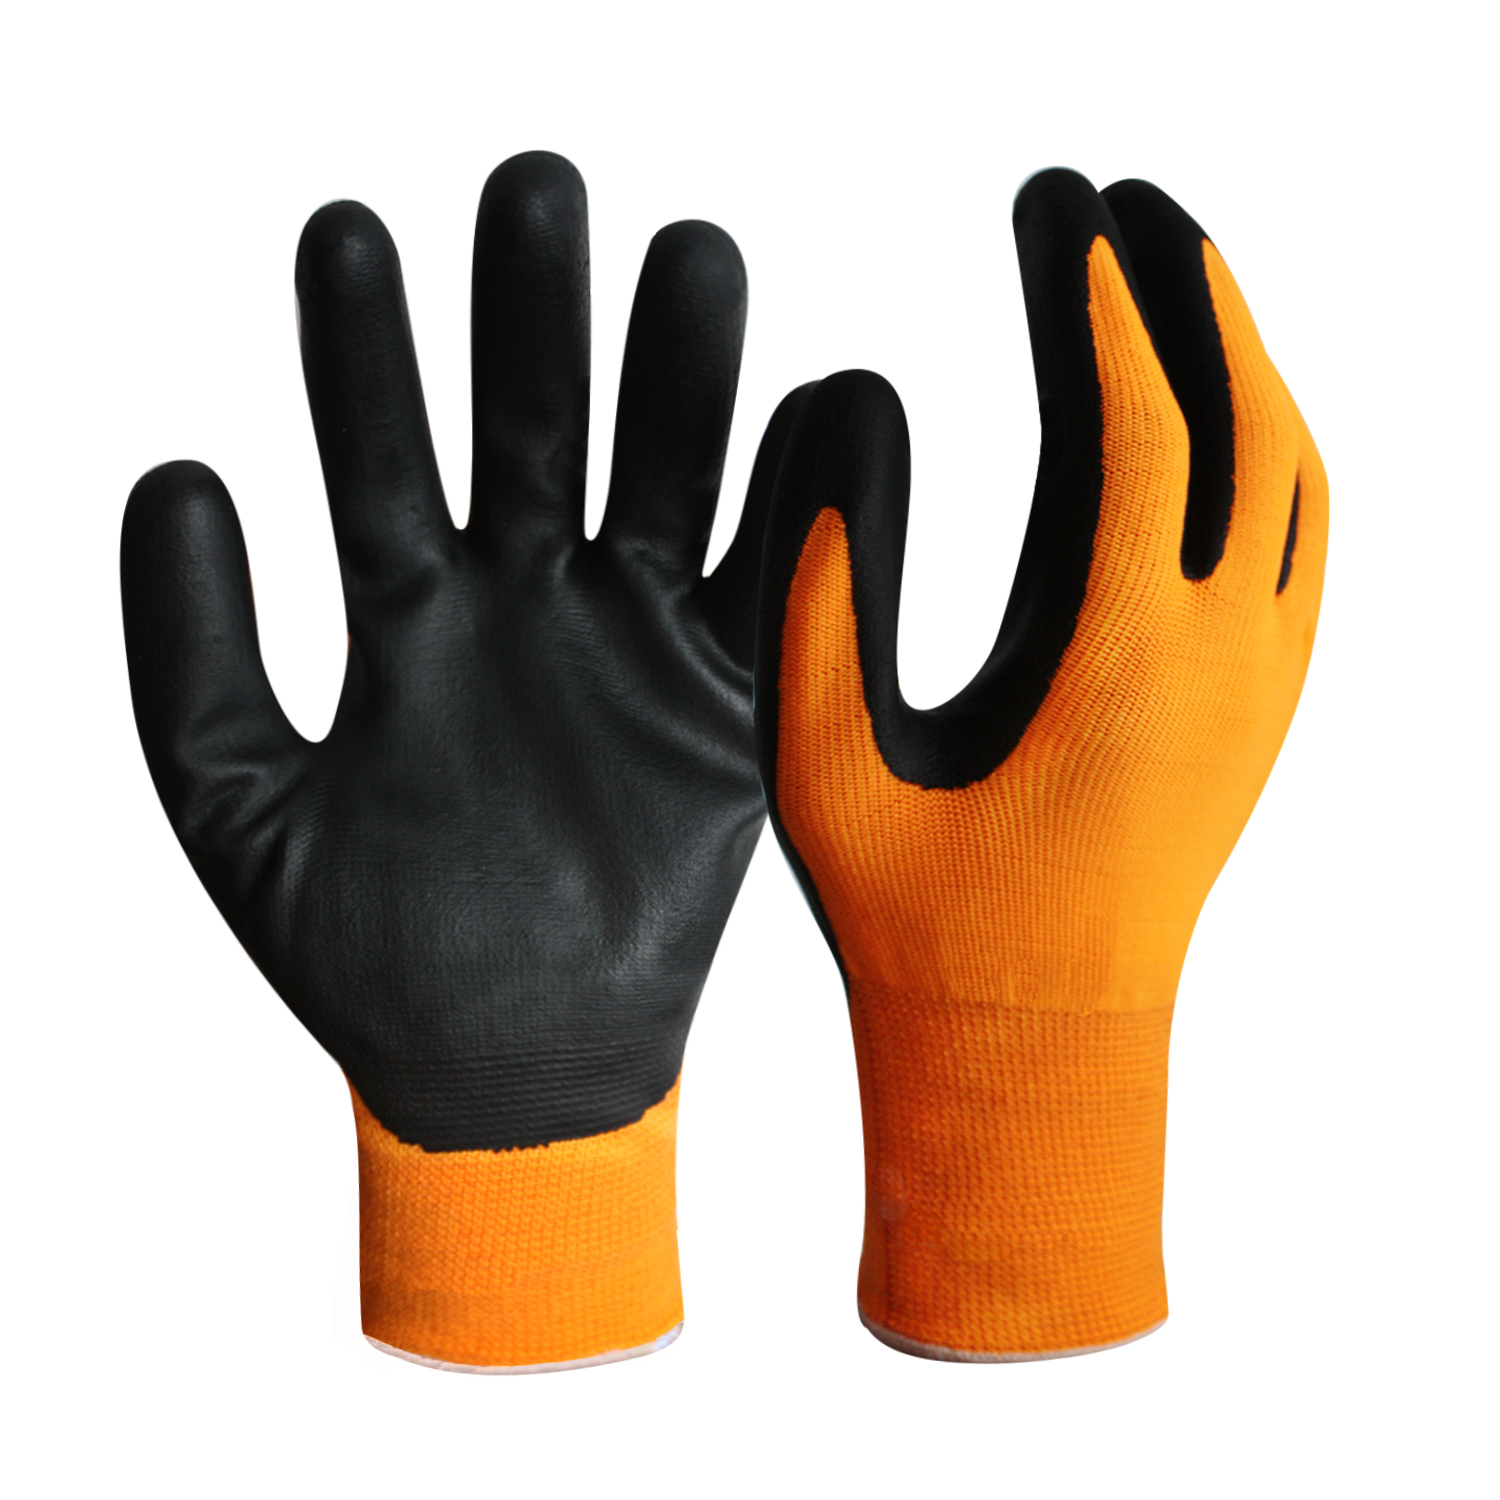 15G Hi-Vis Orange Polyester Nitrile Gloves with Touch Screen Finger/TSG-005